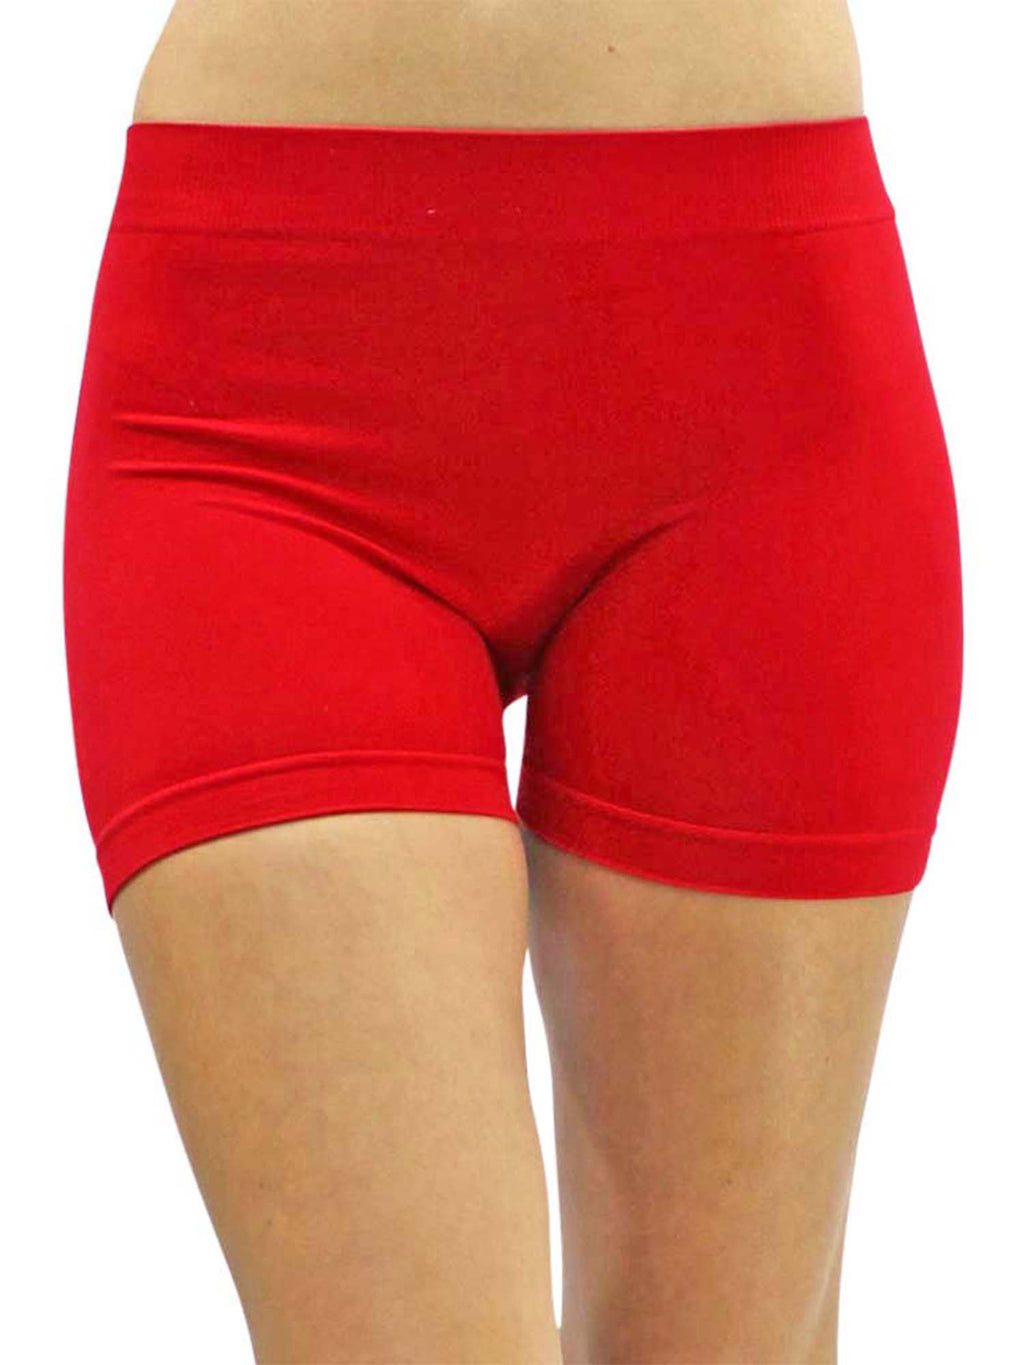 "Red Stretchy 10"" Seamless Yoga Shorts"